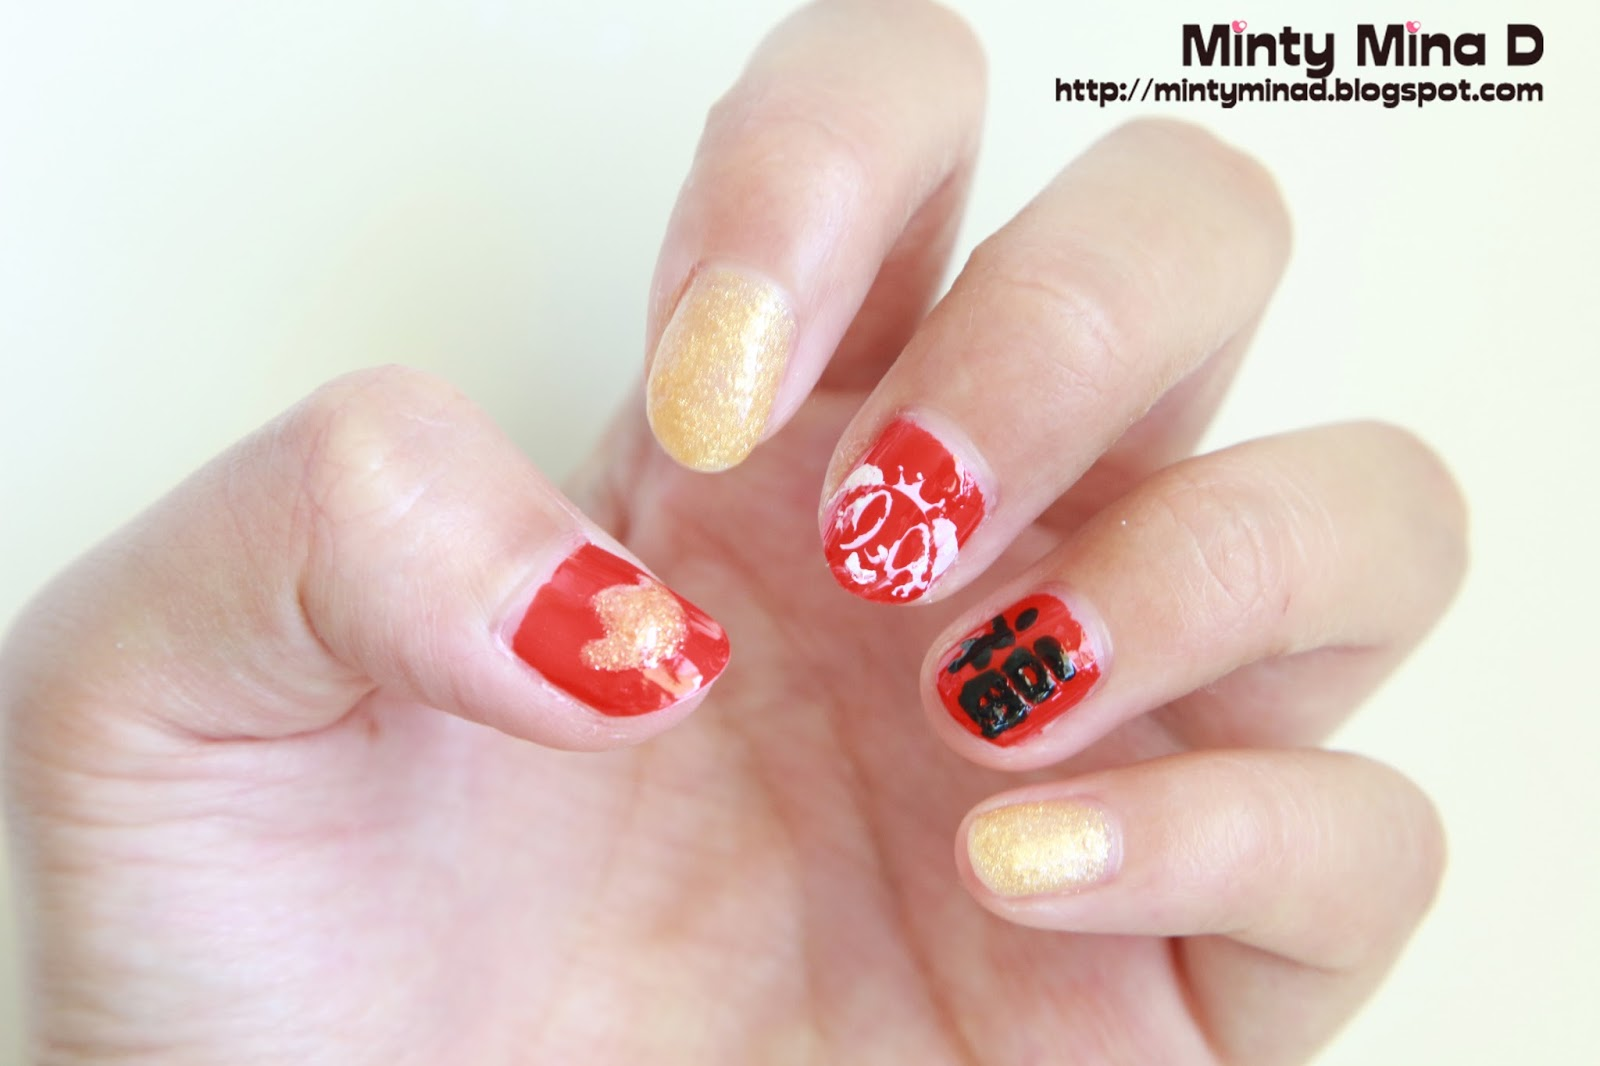 Minty mina d chinese new year nail art and bornprettystore nail design is the stamping nail art and the chinese character i have also matched the base colors of red and gold to the theme of chinese new year prinsesfo Choice Image